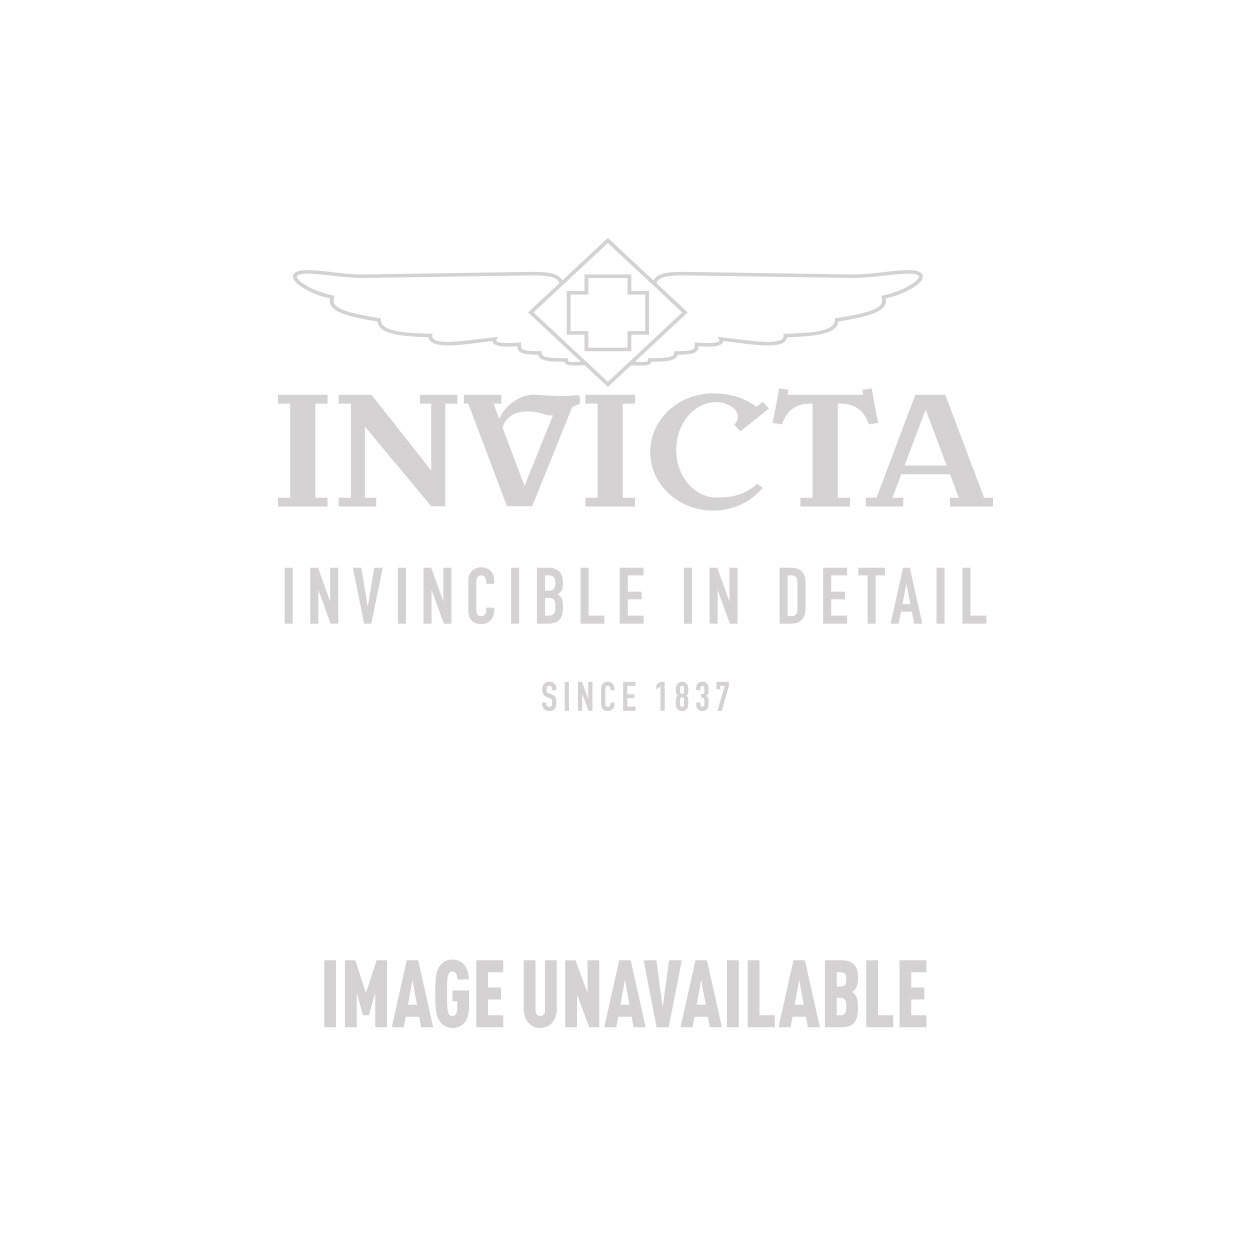 Invicta Angel Swiss Movement Quartz Watch - Rose Gold case with Rose Gold tone Stainless Steel band - Model 17421